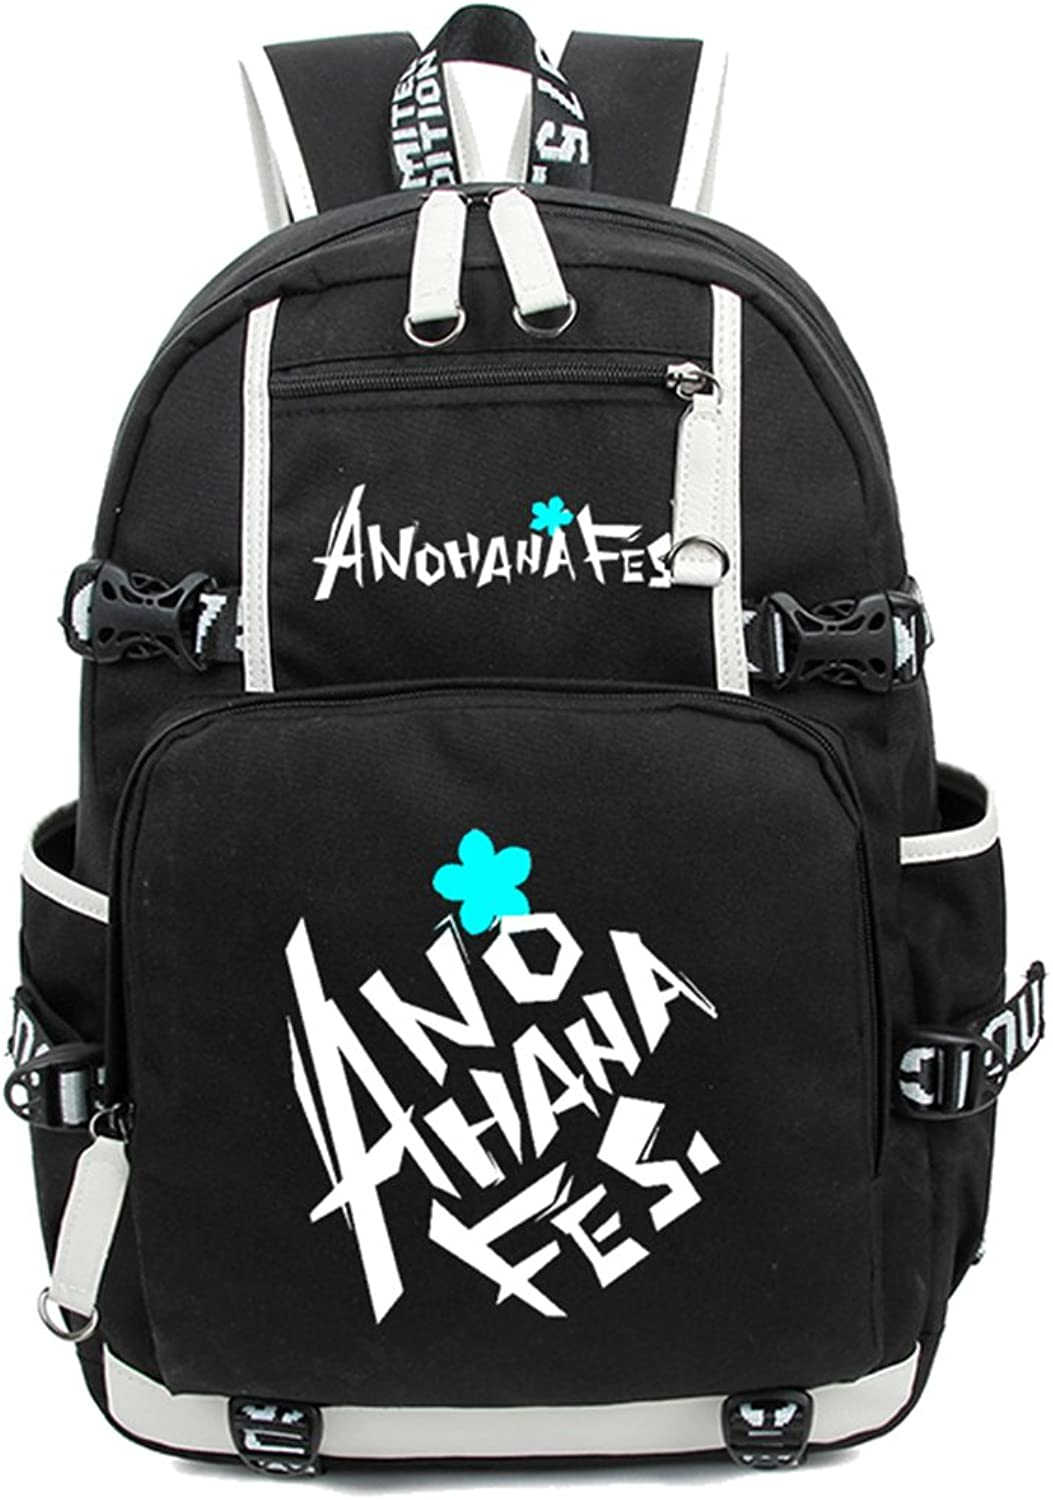 Gumstyle AnoHana Luminous Backpack Anime Book Bag Casual School Bag